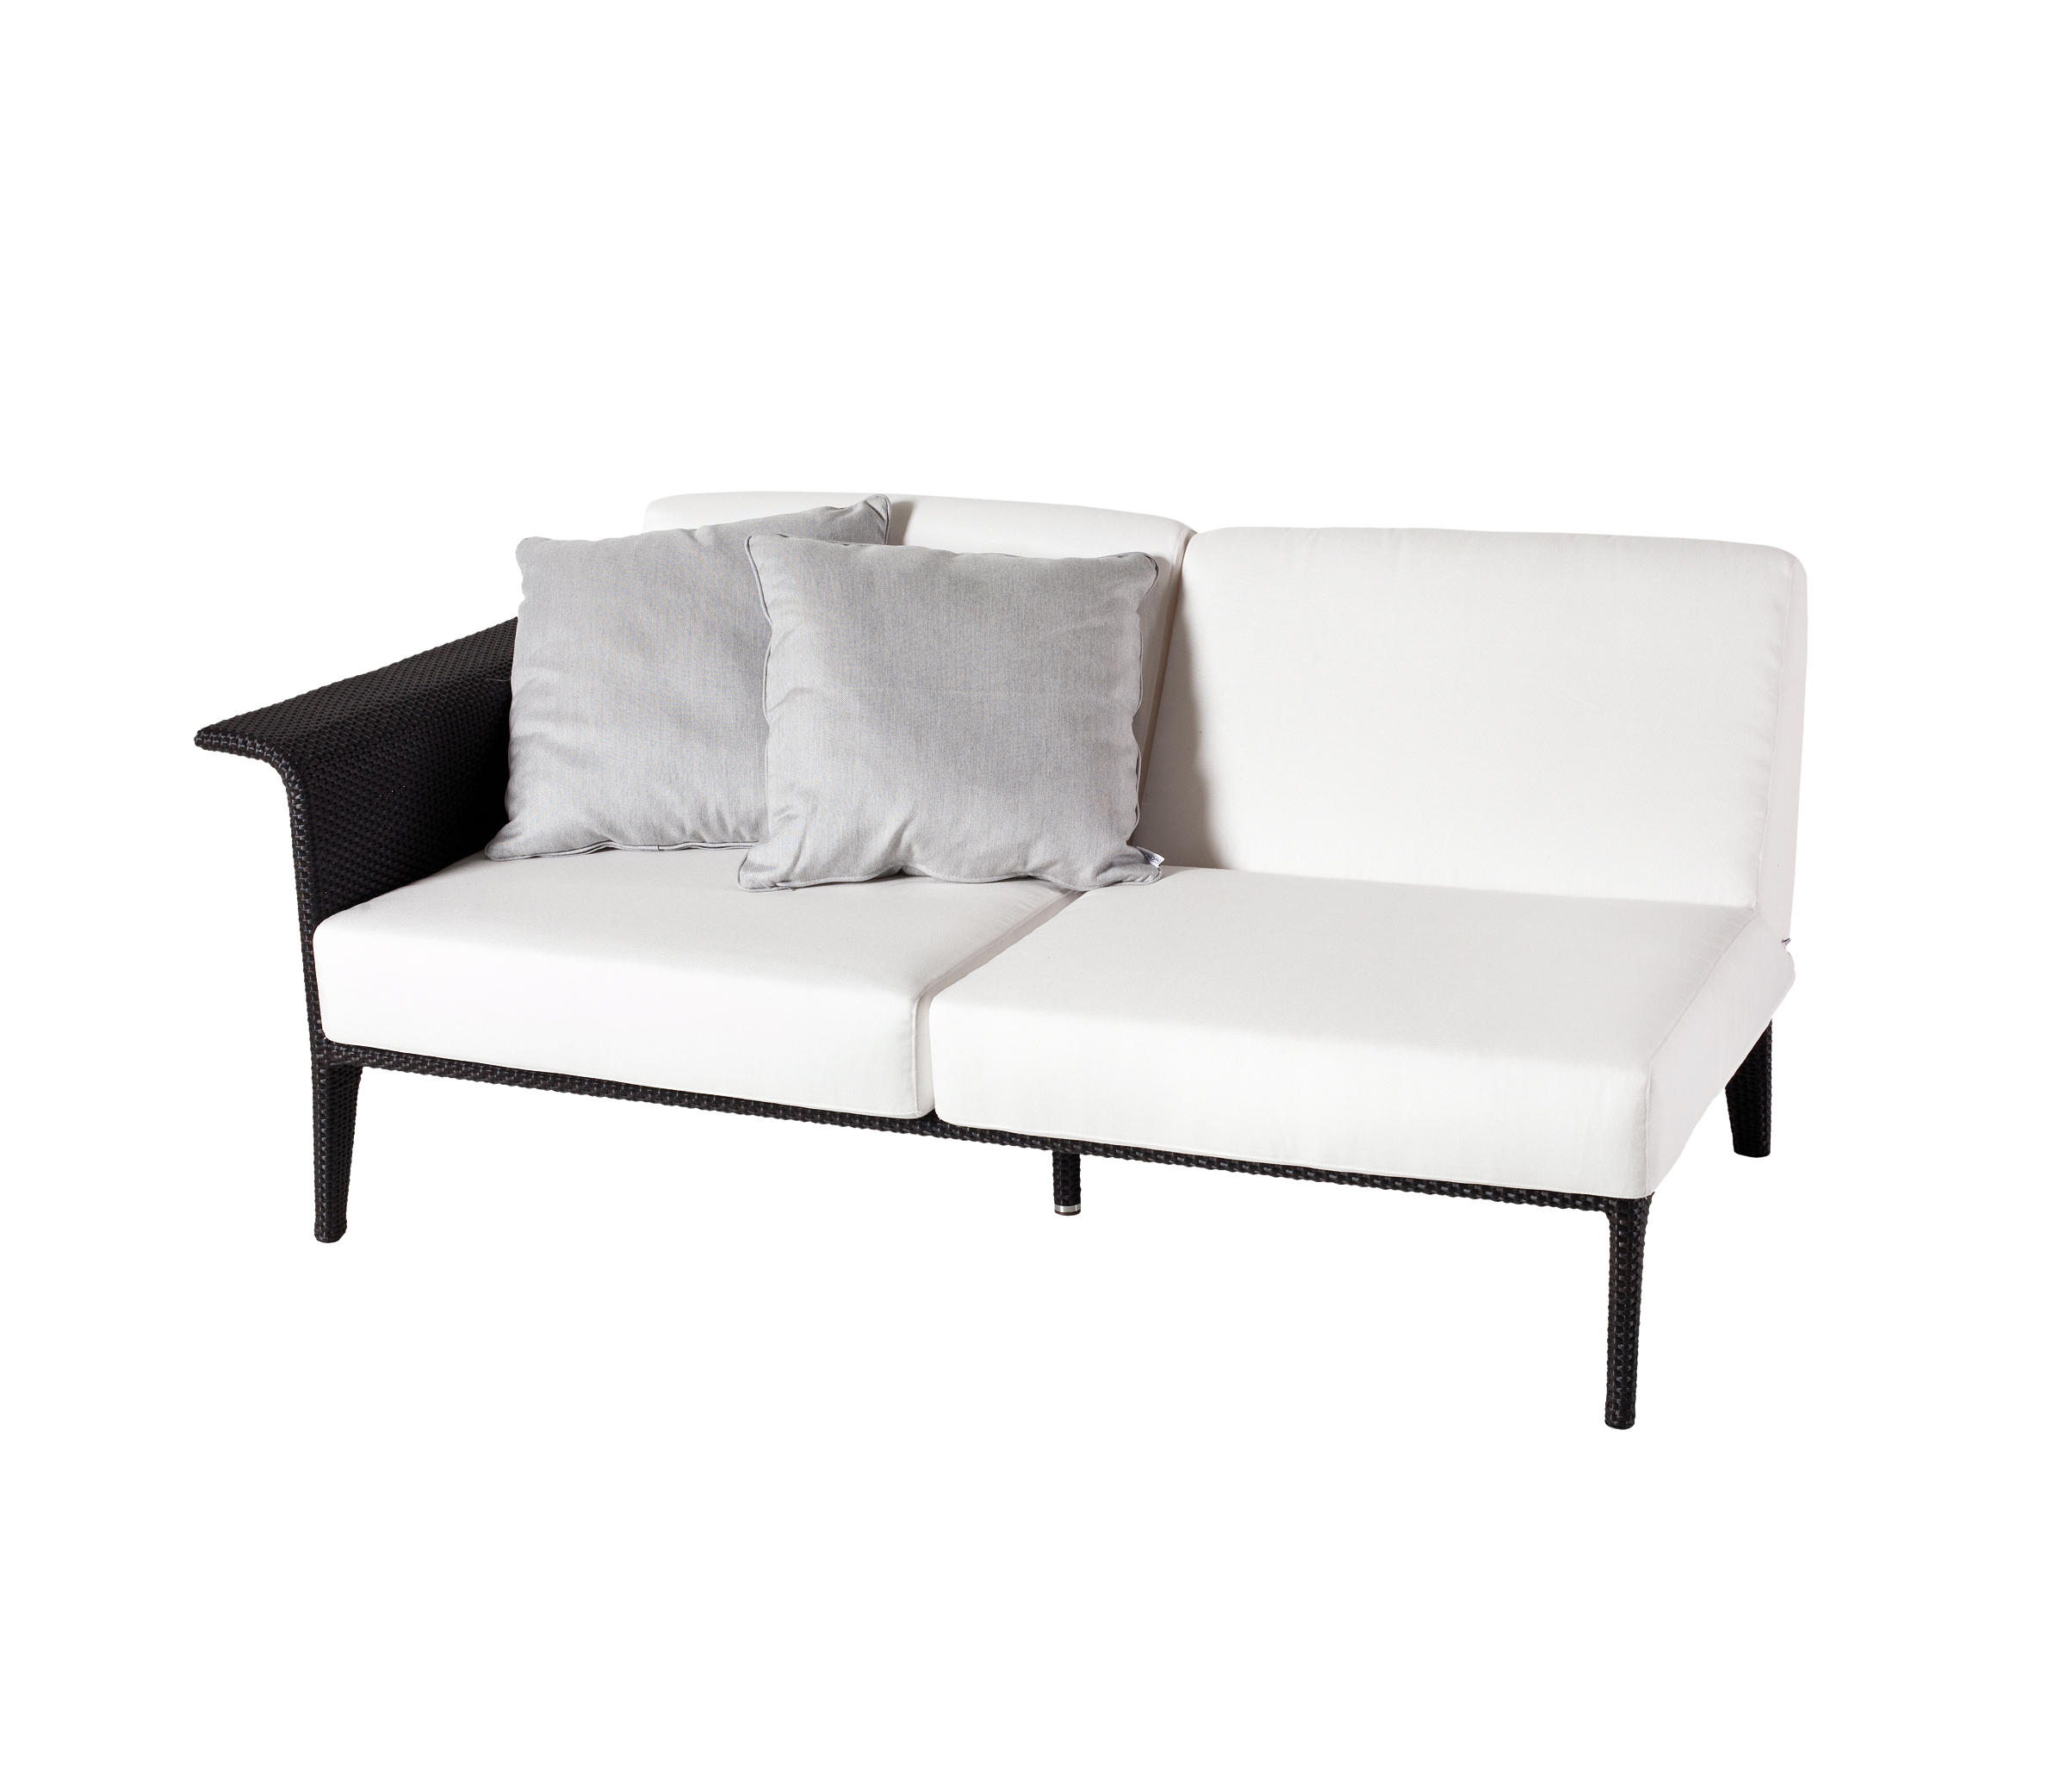 u modul sofa 2 armlehne rechts gartensofas von point architonic. Black Bedroom Furniture Sets. Home Design Ideas